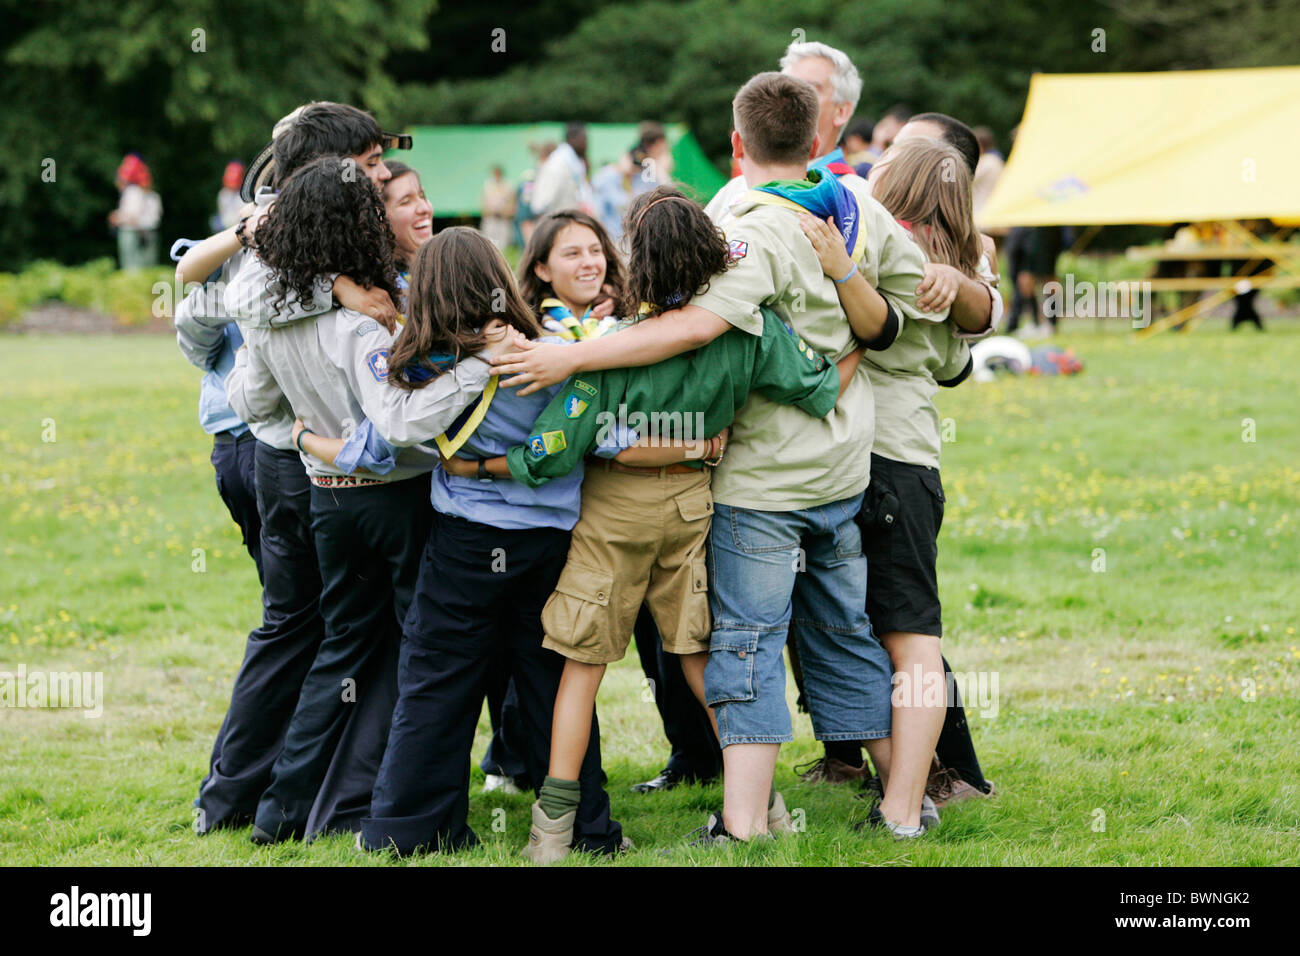 Scouts Group Stock Photos & Scouts Group Stock Images - Alamy